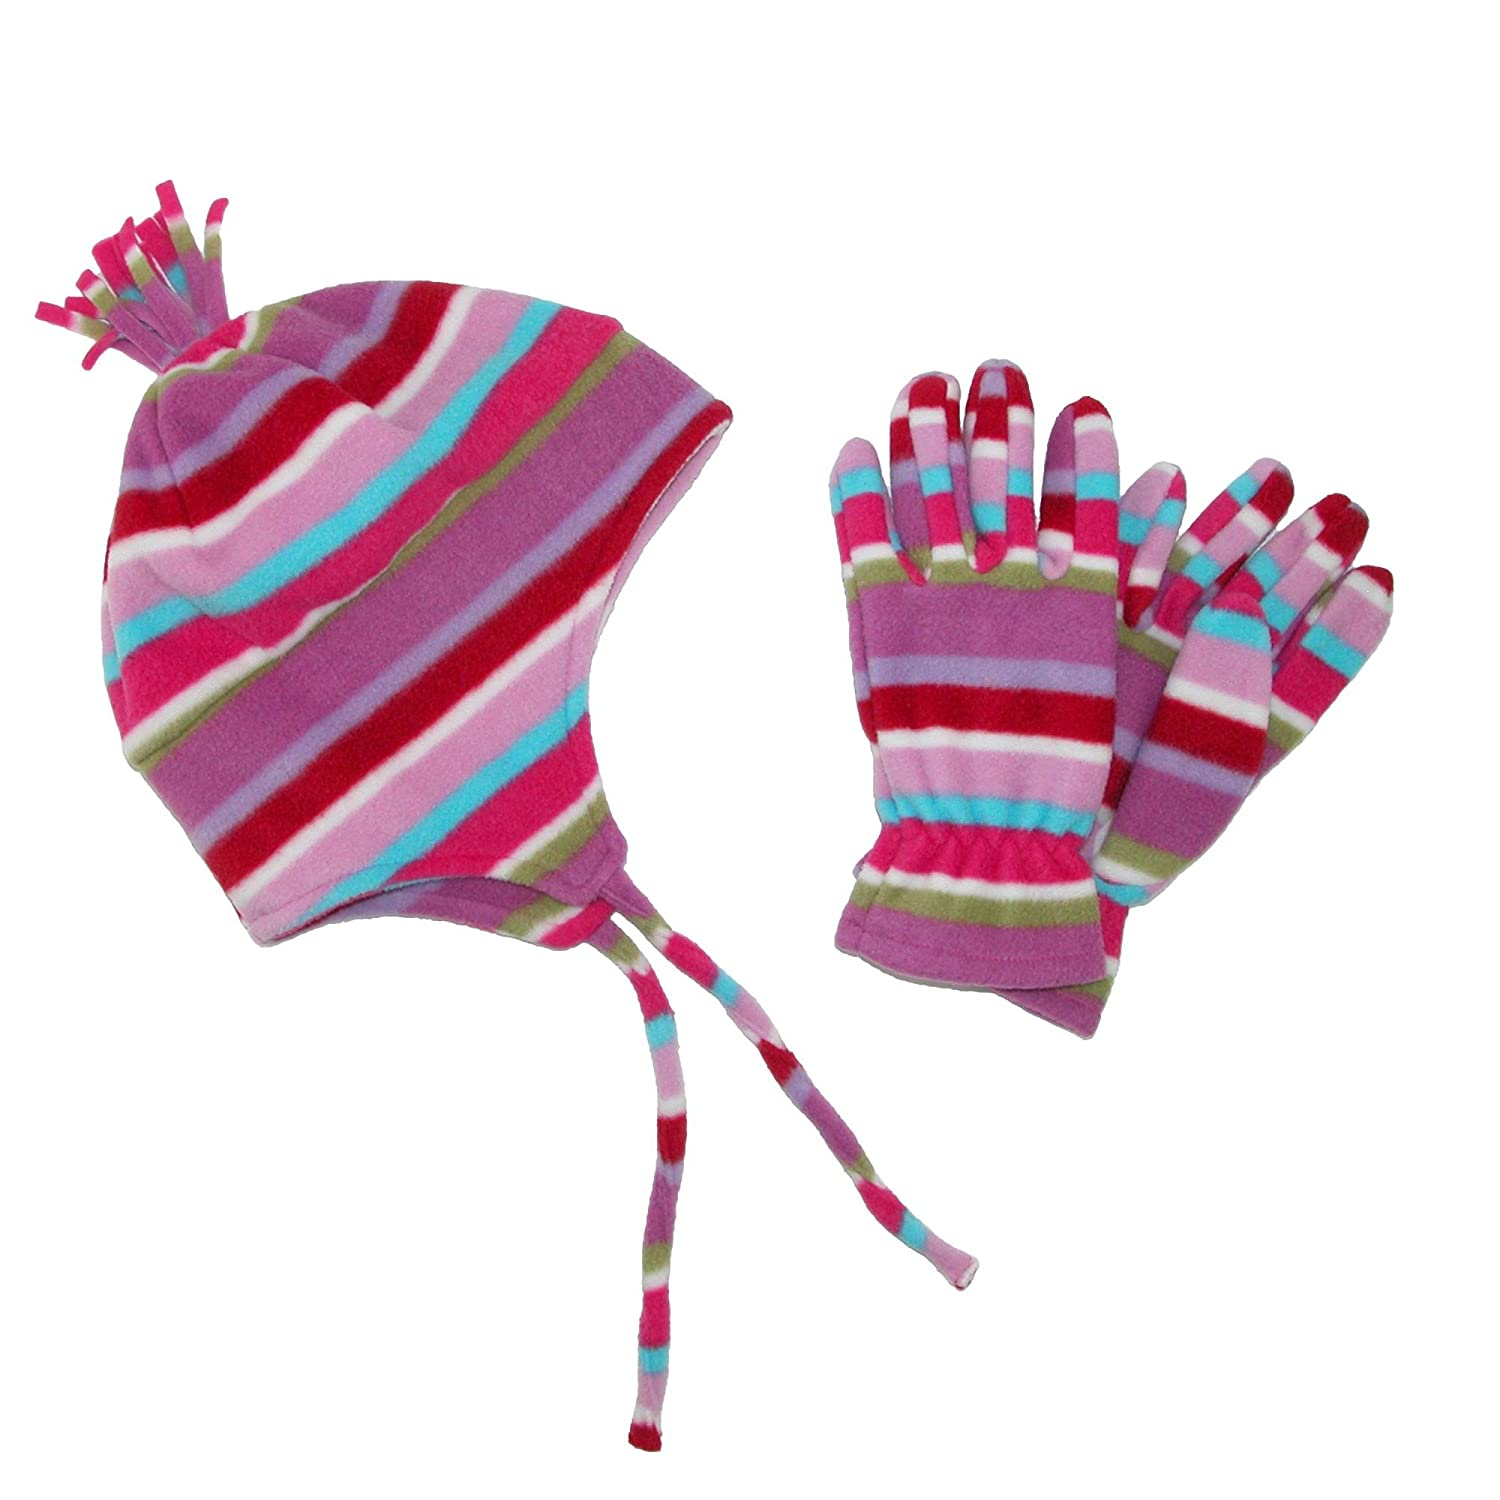 Grand Sierra Kid's 7-16 Helmet and Glove Fleece 2 Piece Set, Pink